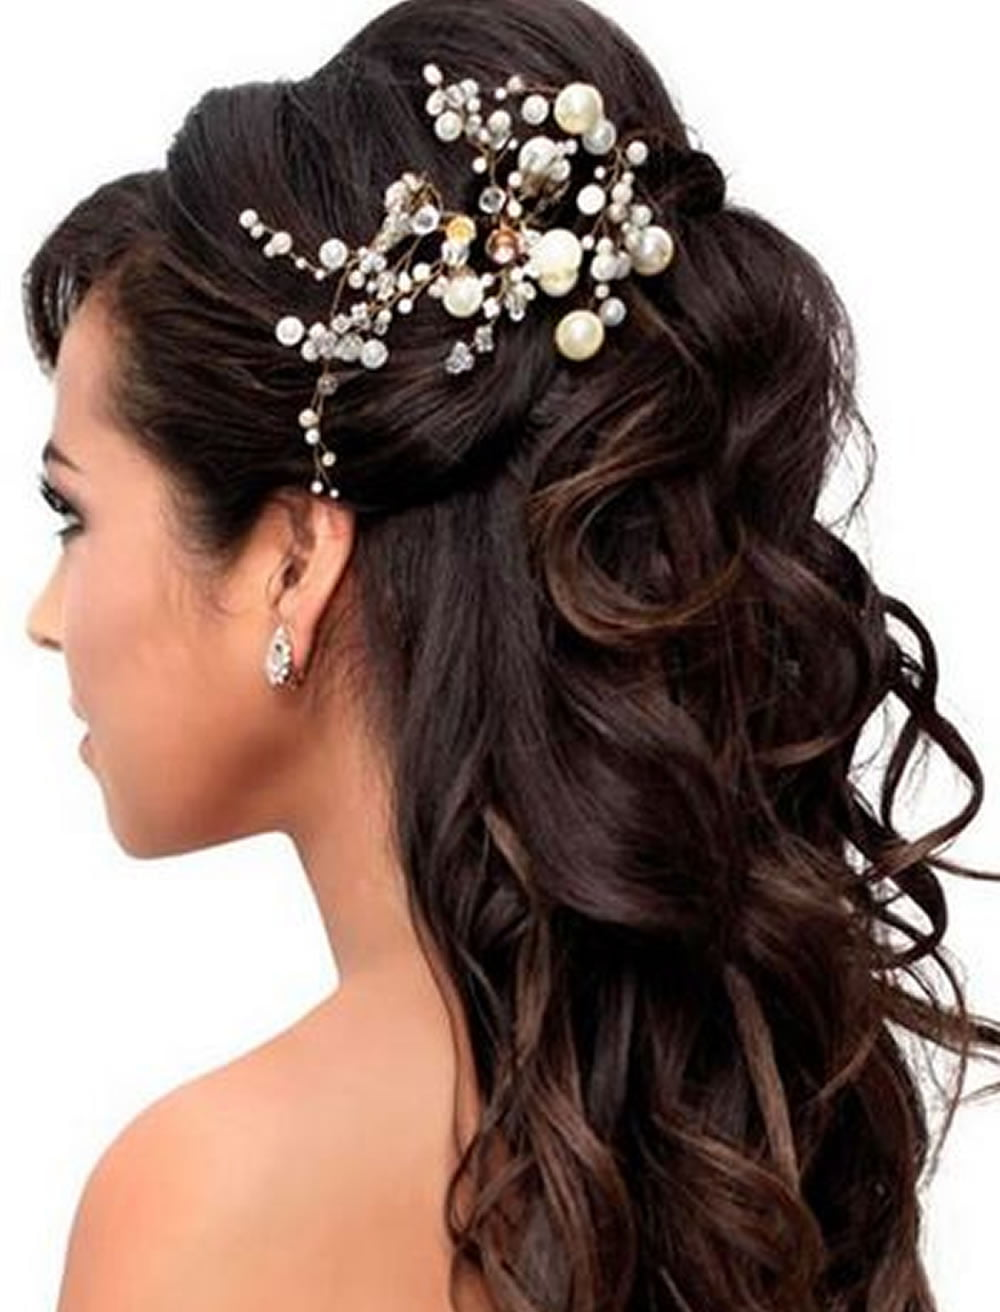 Very stylish wedding hairstyles for long hair 2018 2019 wedding hairstyles for long hair summer 2018 2019 junglespirit Images